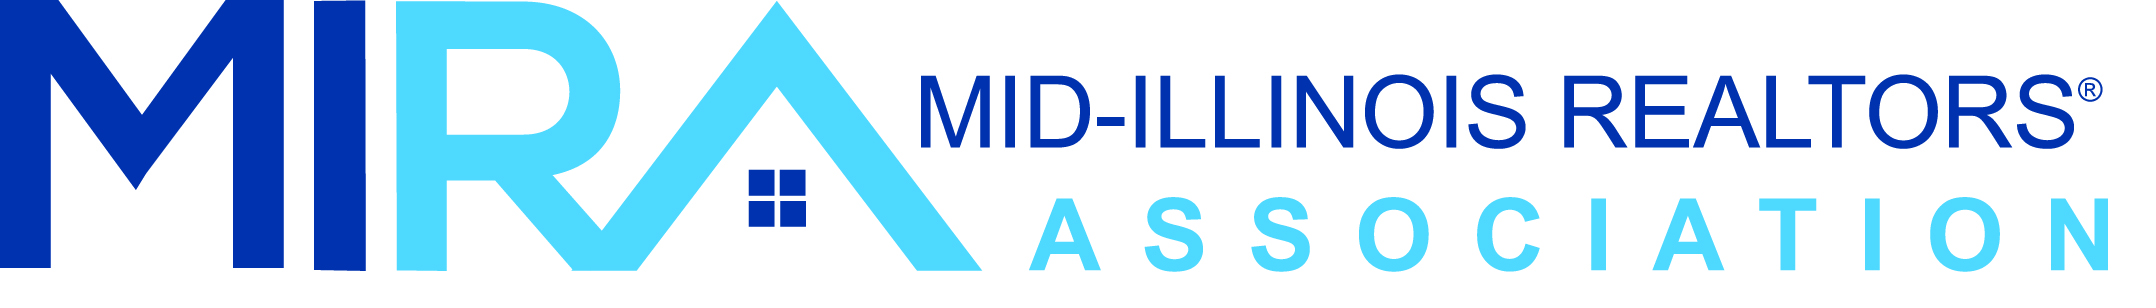 Mid-Illinois REALTORS® Association Logo